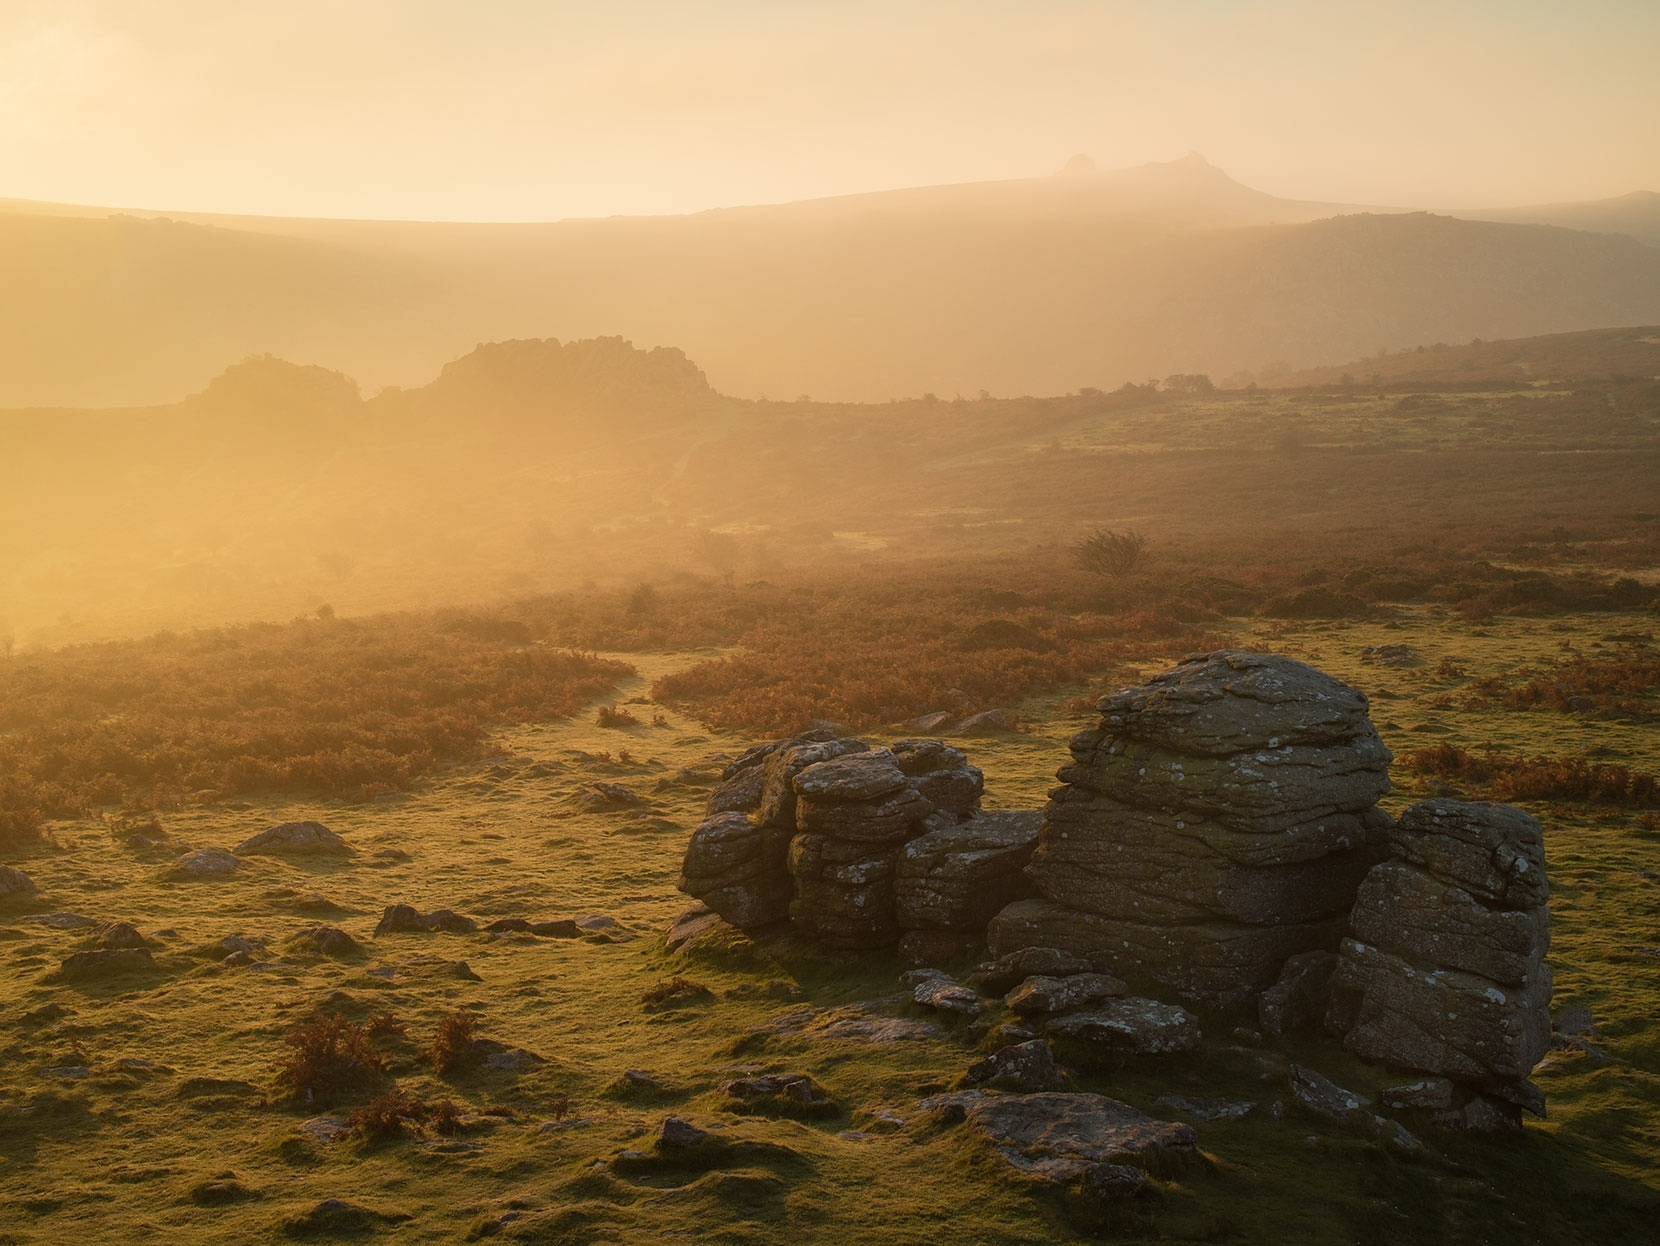 From Houndtor - this lemon yellow moment was once again short lived as the light changed colour rapidly